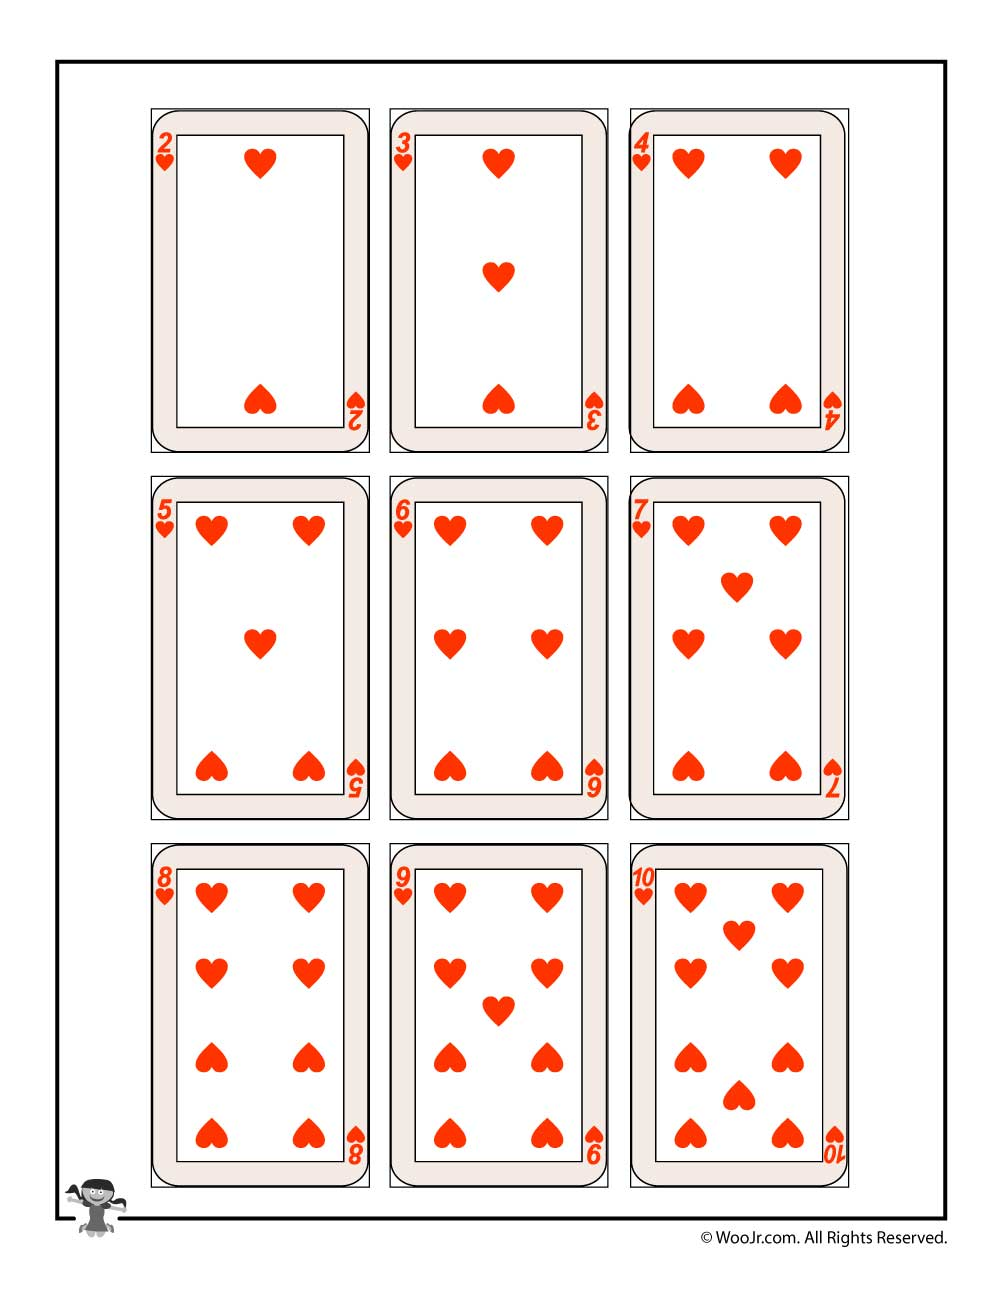 image regarding Playing Card Printable identify Printable actively playing playing cards - hearts Woo! Jr. Little ones Functions